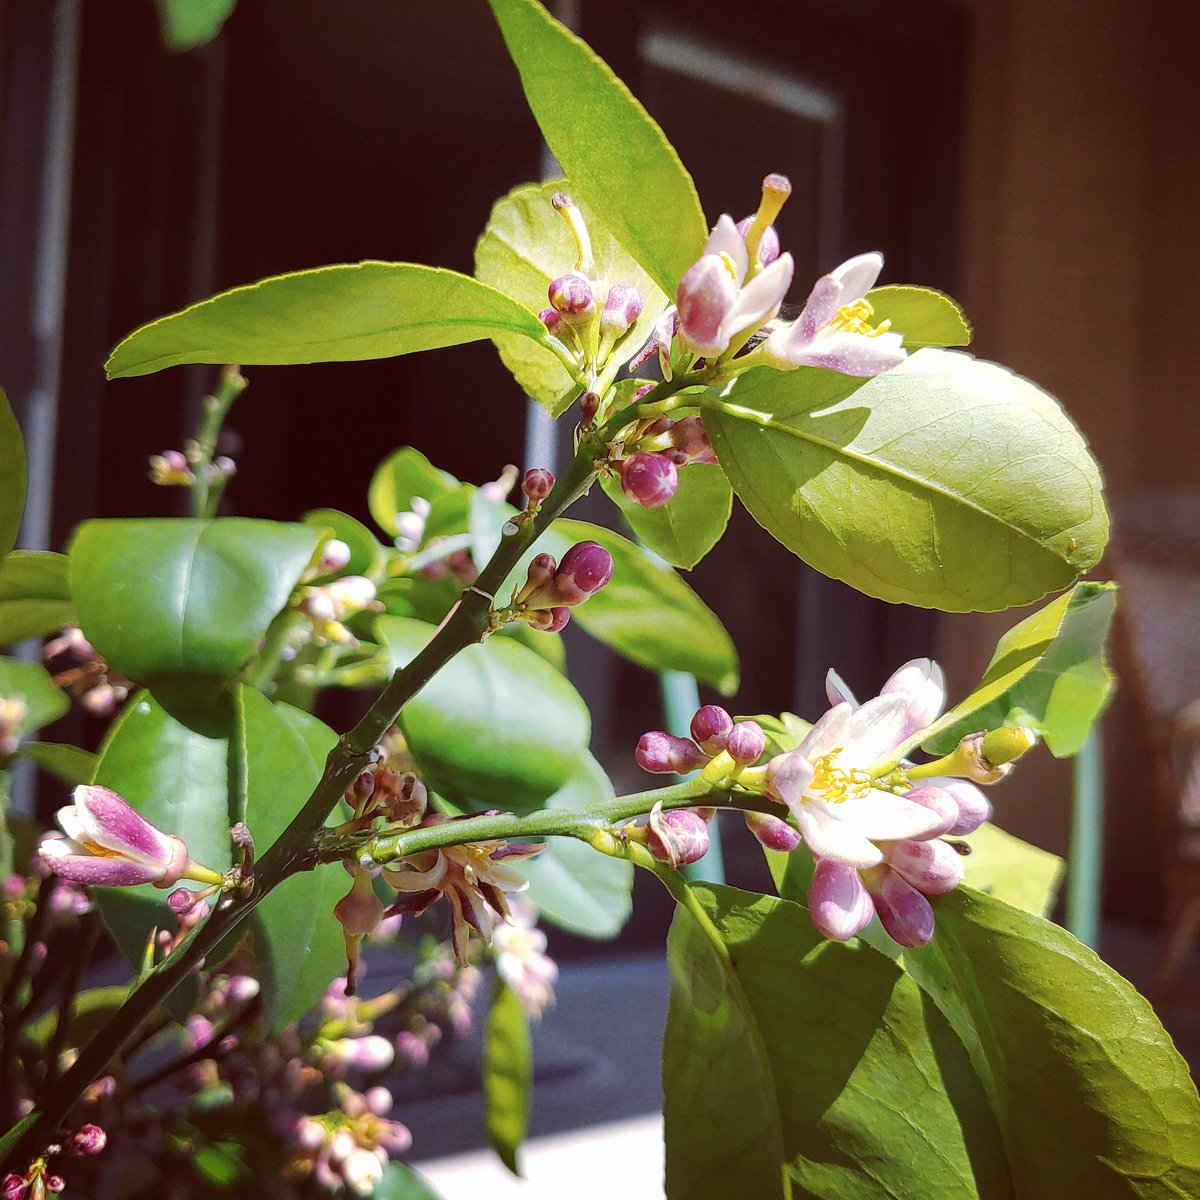 Citrus blooms and lemon blossoms! With all the craziness going on I just want to say Spring is in the air, and it is as beautiful a day as ever!   #spring2020 #springisintheair #spring #springweather #plants #lemmontree #meyerlemon #lemonblossom #lemons #nature #beautifulpic.twitter.com/3ECB75XxoJ